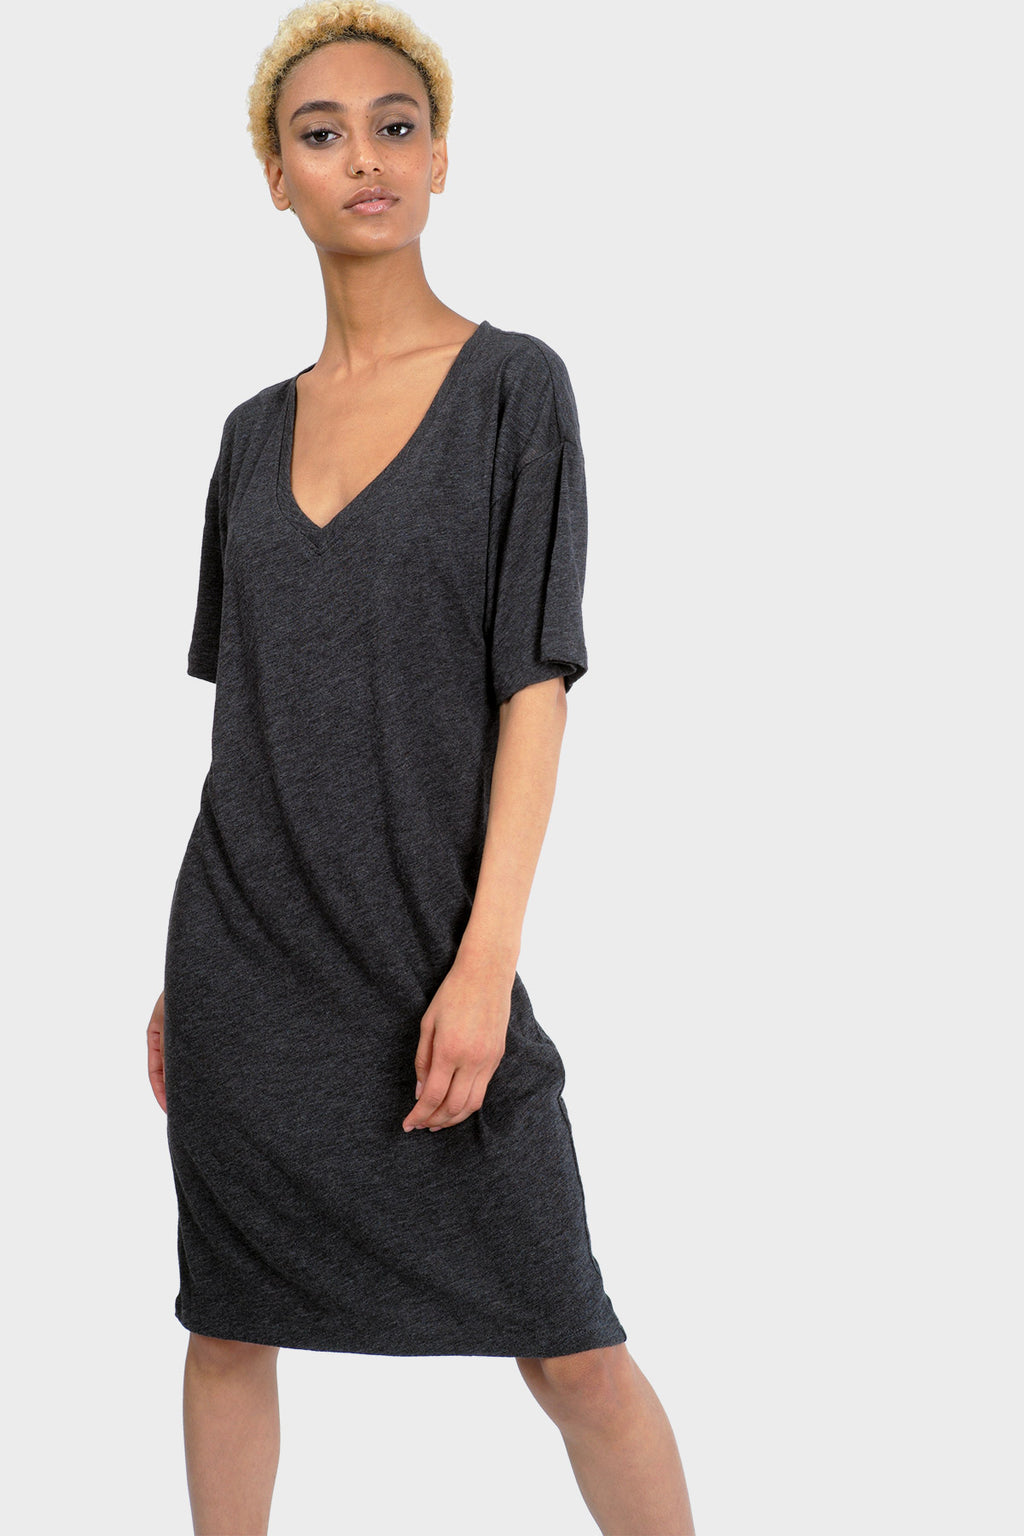 MIKA T-SHIRT DRESS - 337 BRAND Women's Sustainable Clothing